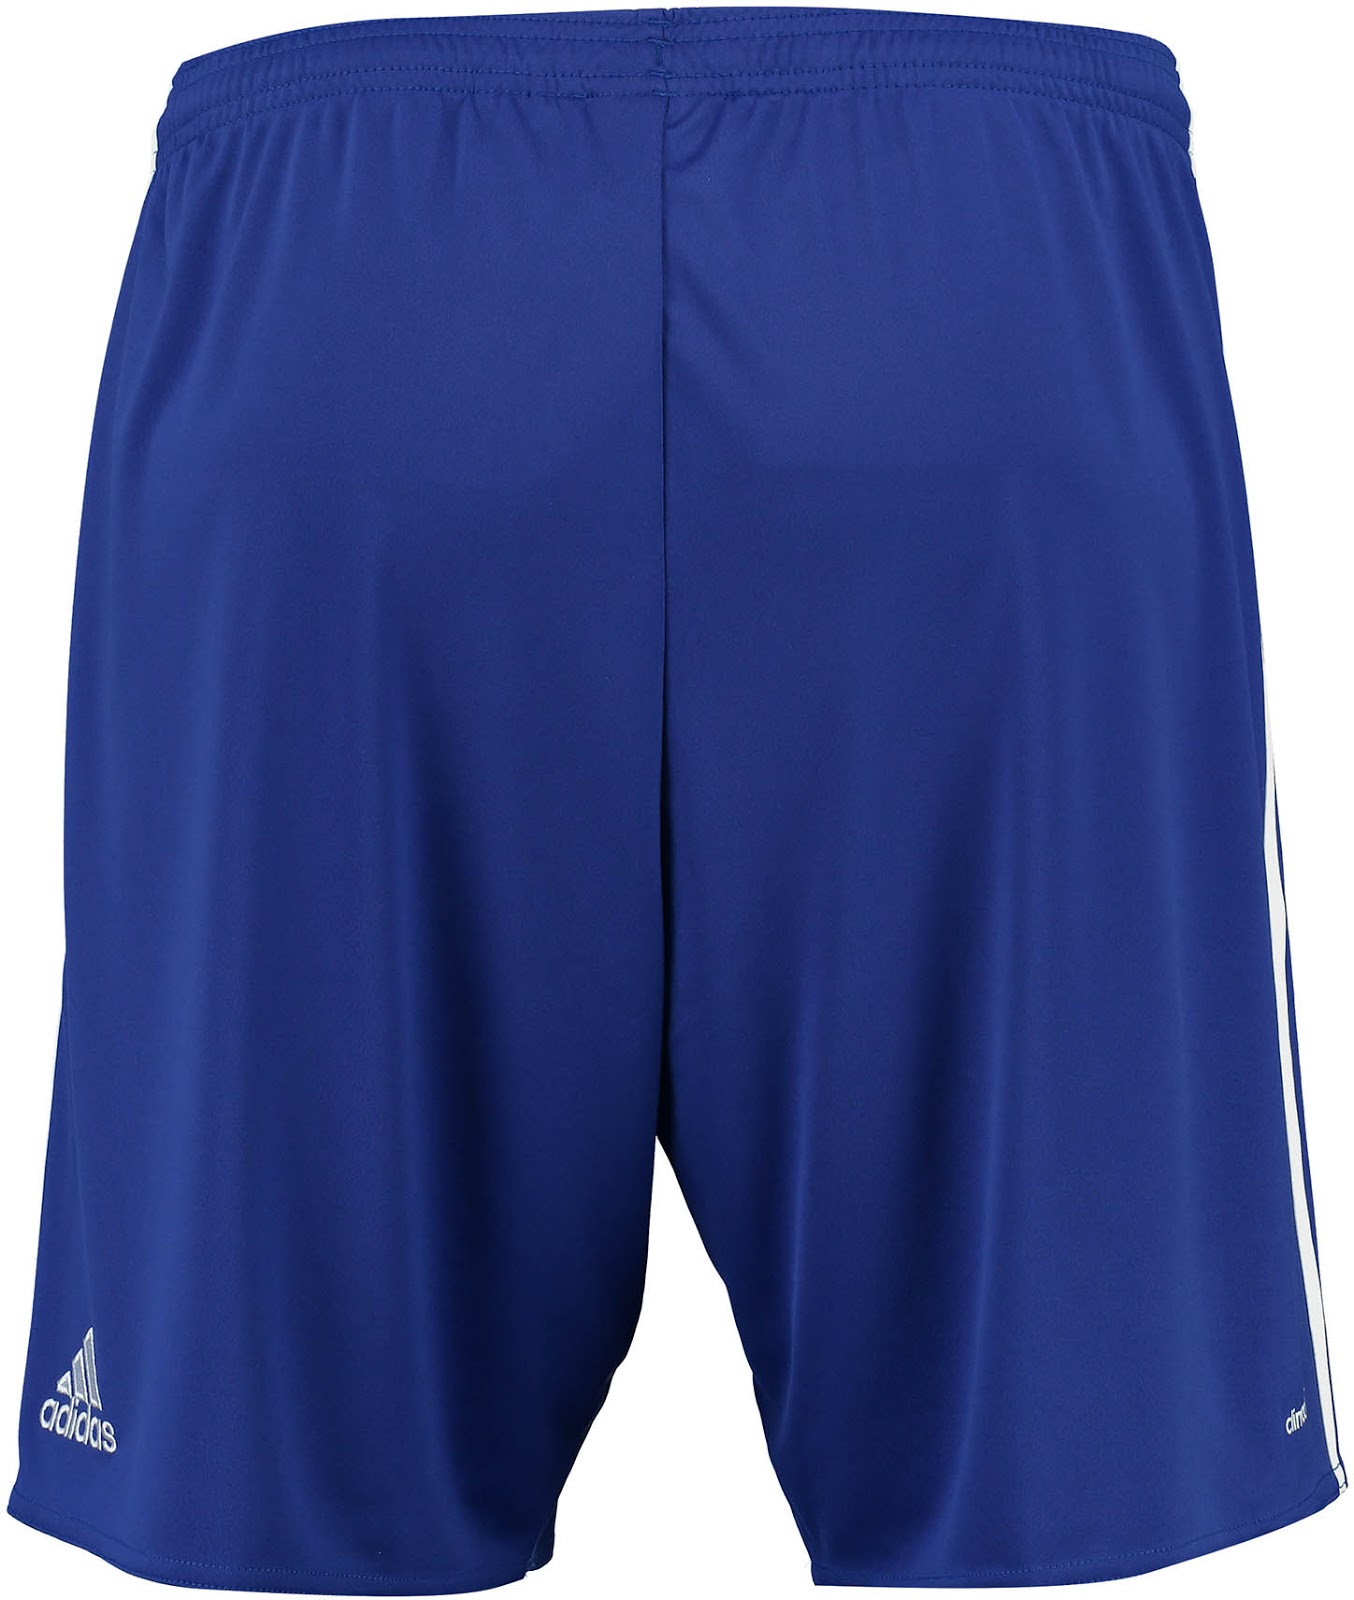 Completing the traditional blue-blue-white of Chelsea, the new Adidas Chelsea  2016-17 home kit shorts and socks are blue and white, respectively.